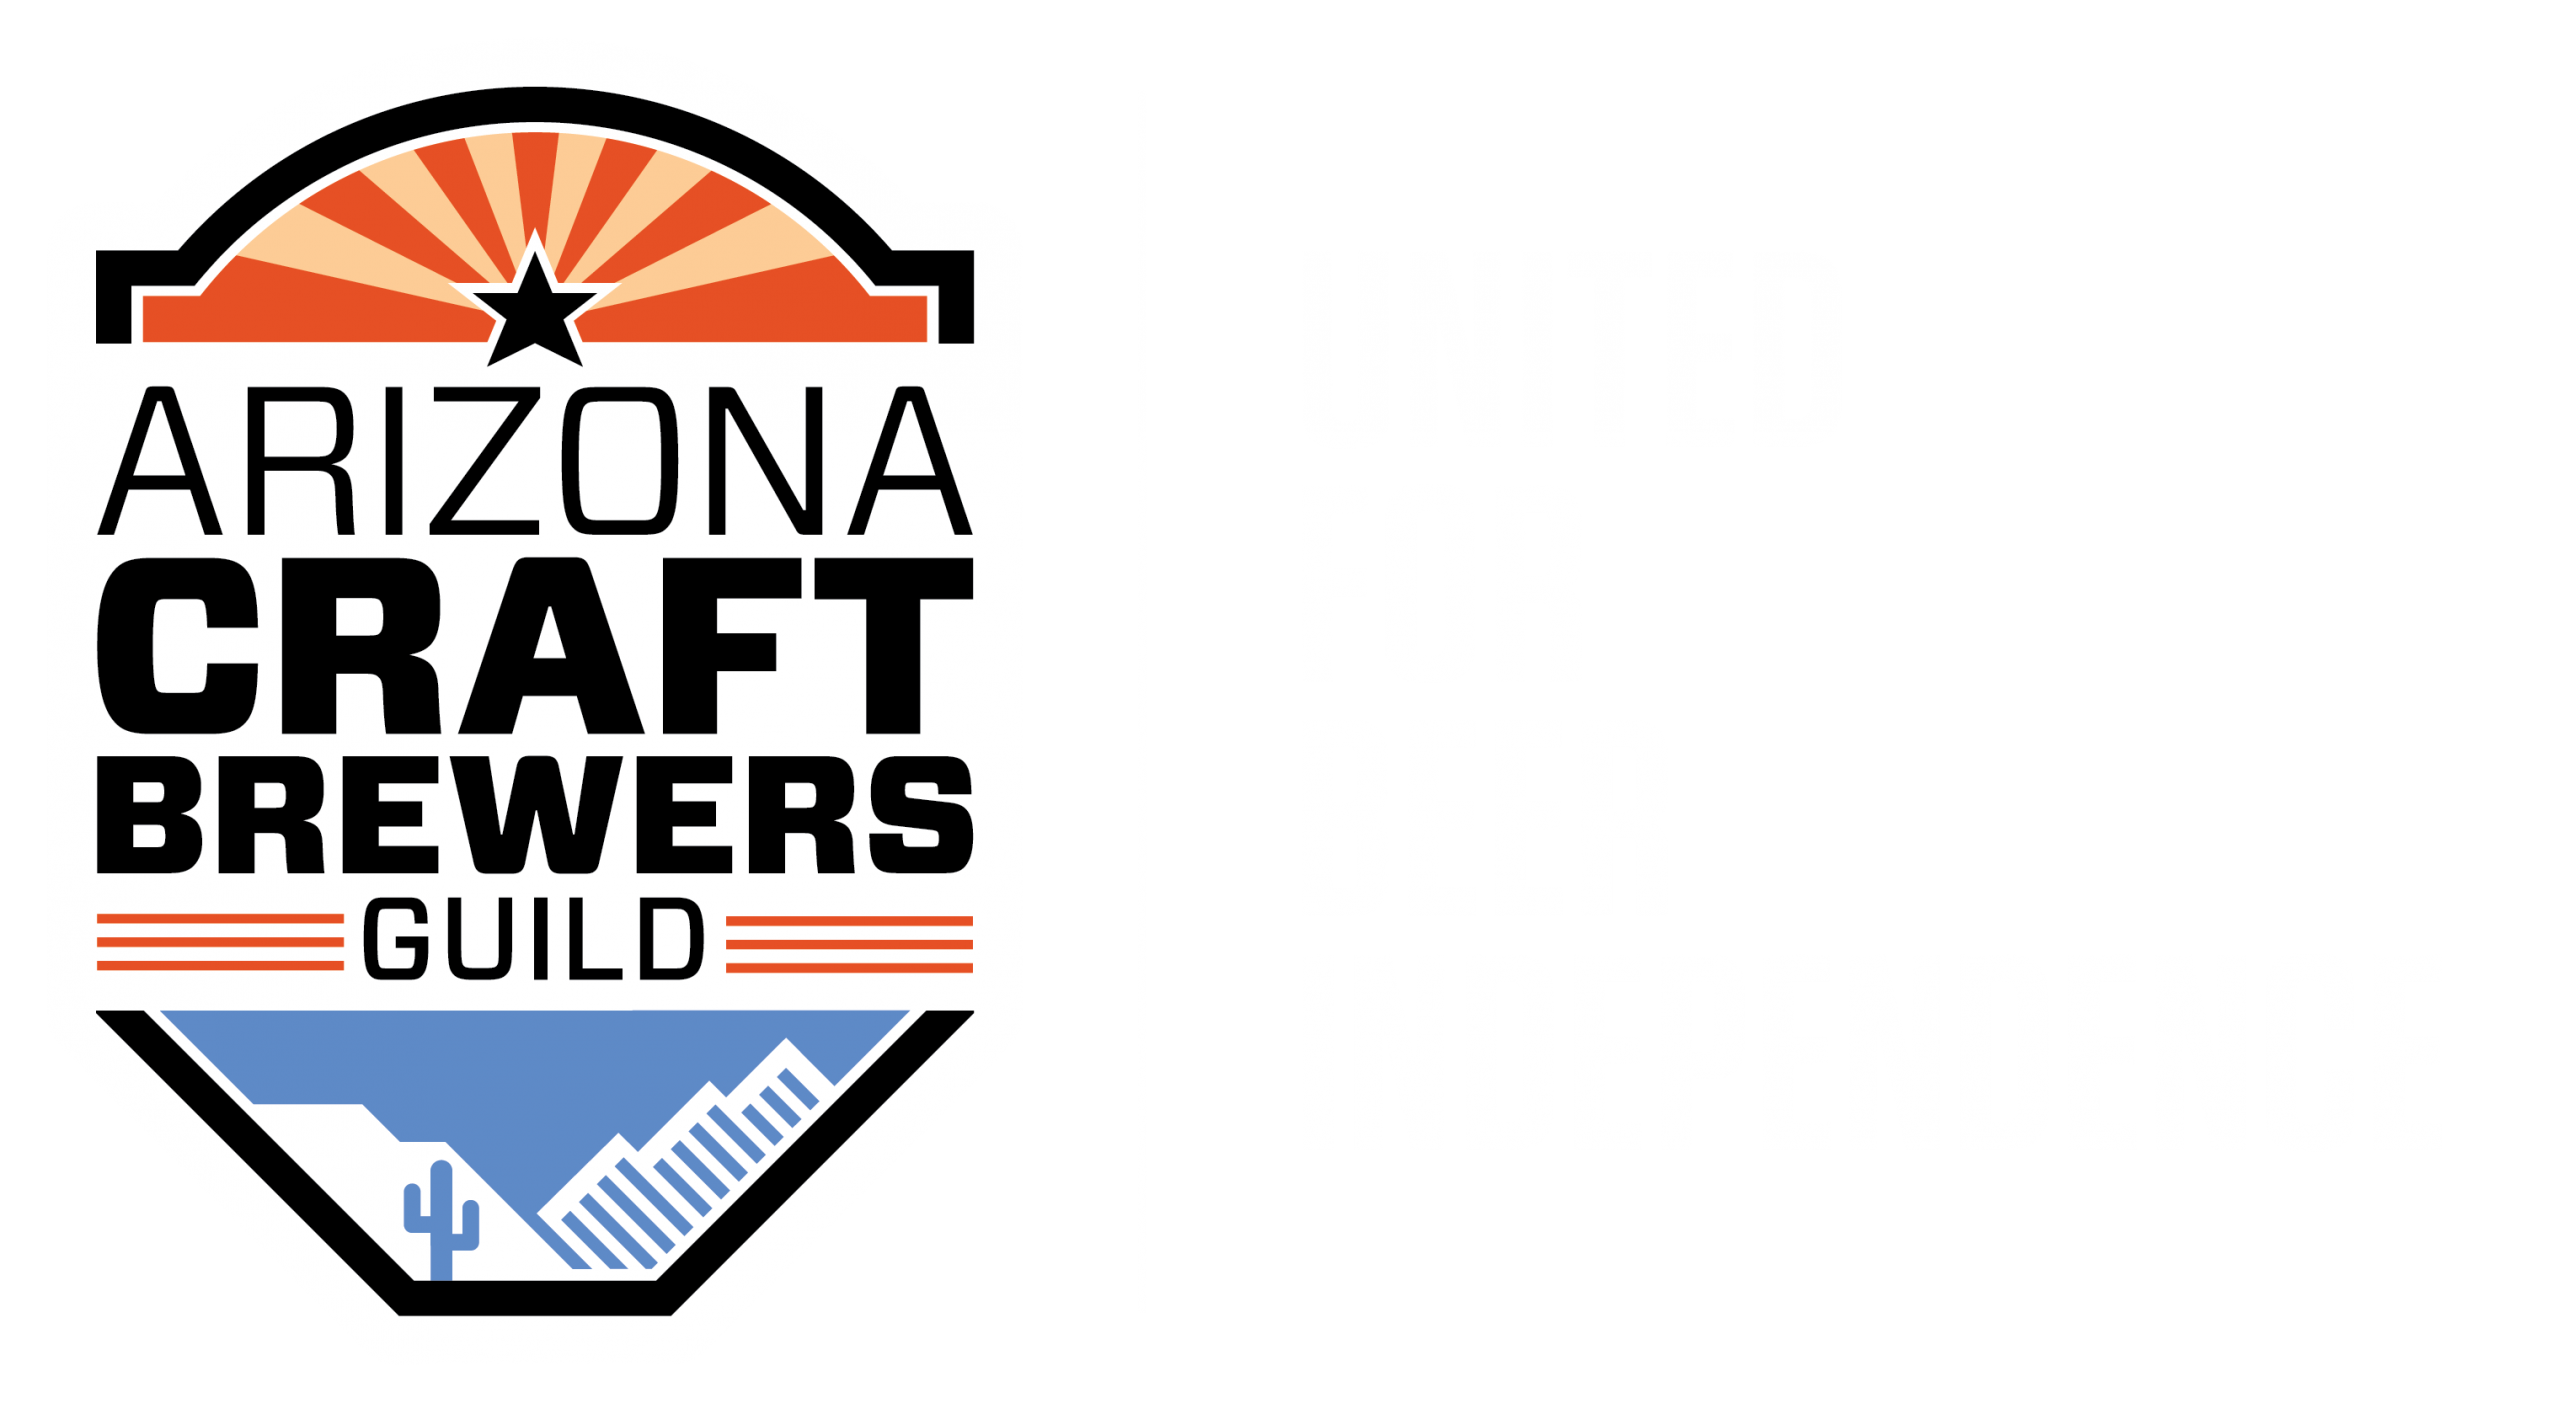 Modern Round | Arizona Craft Brewers Guild